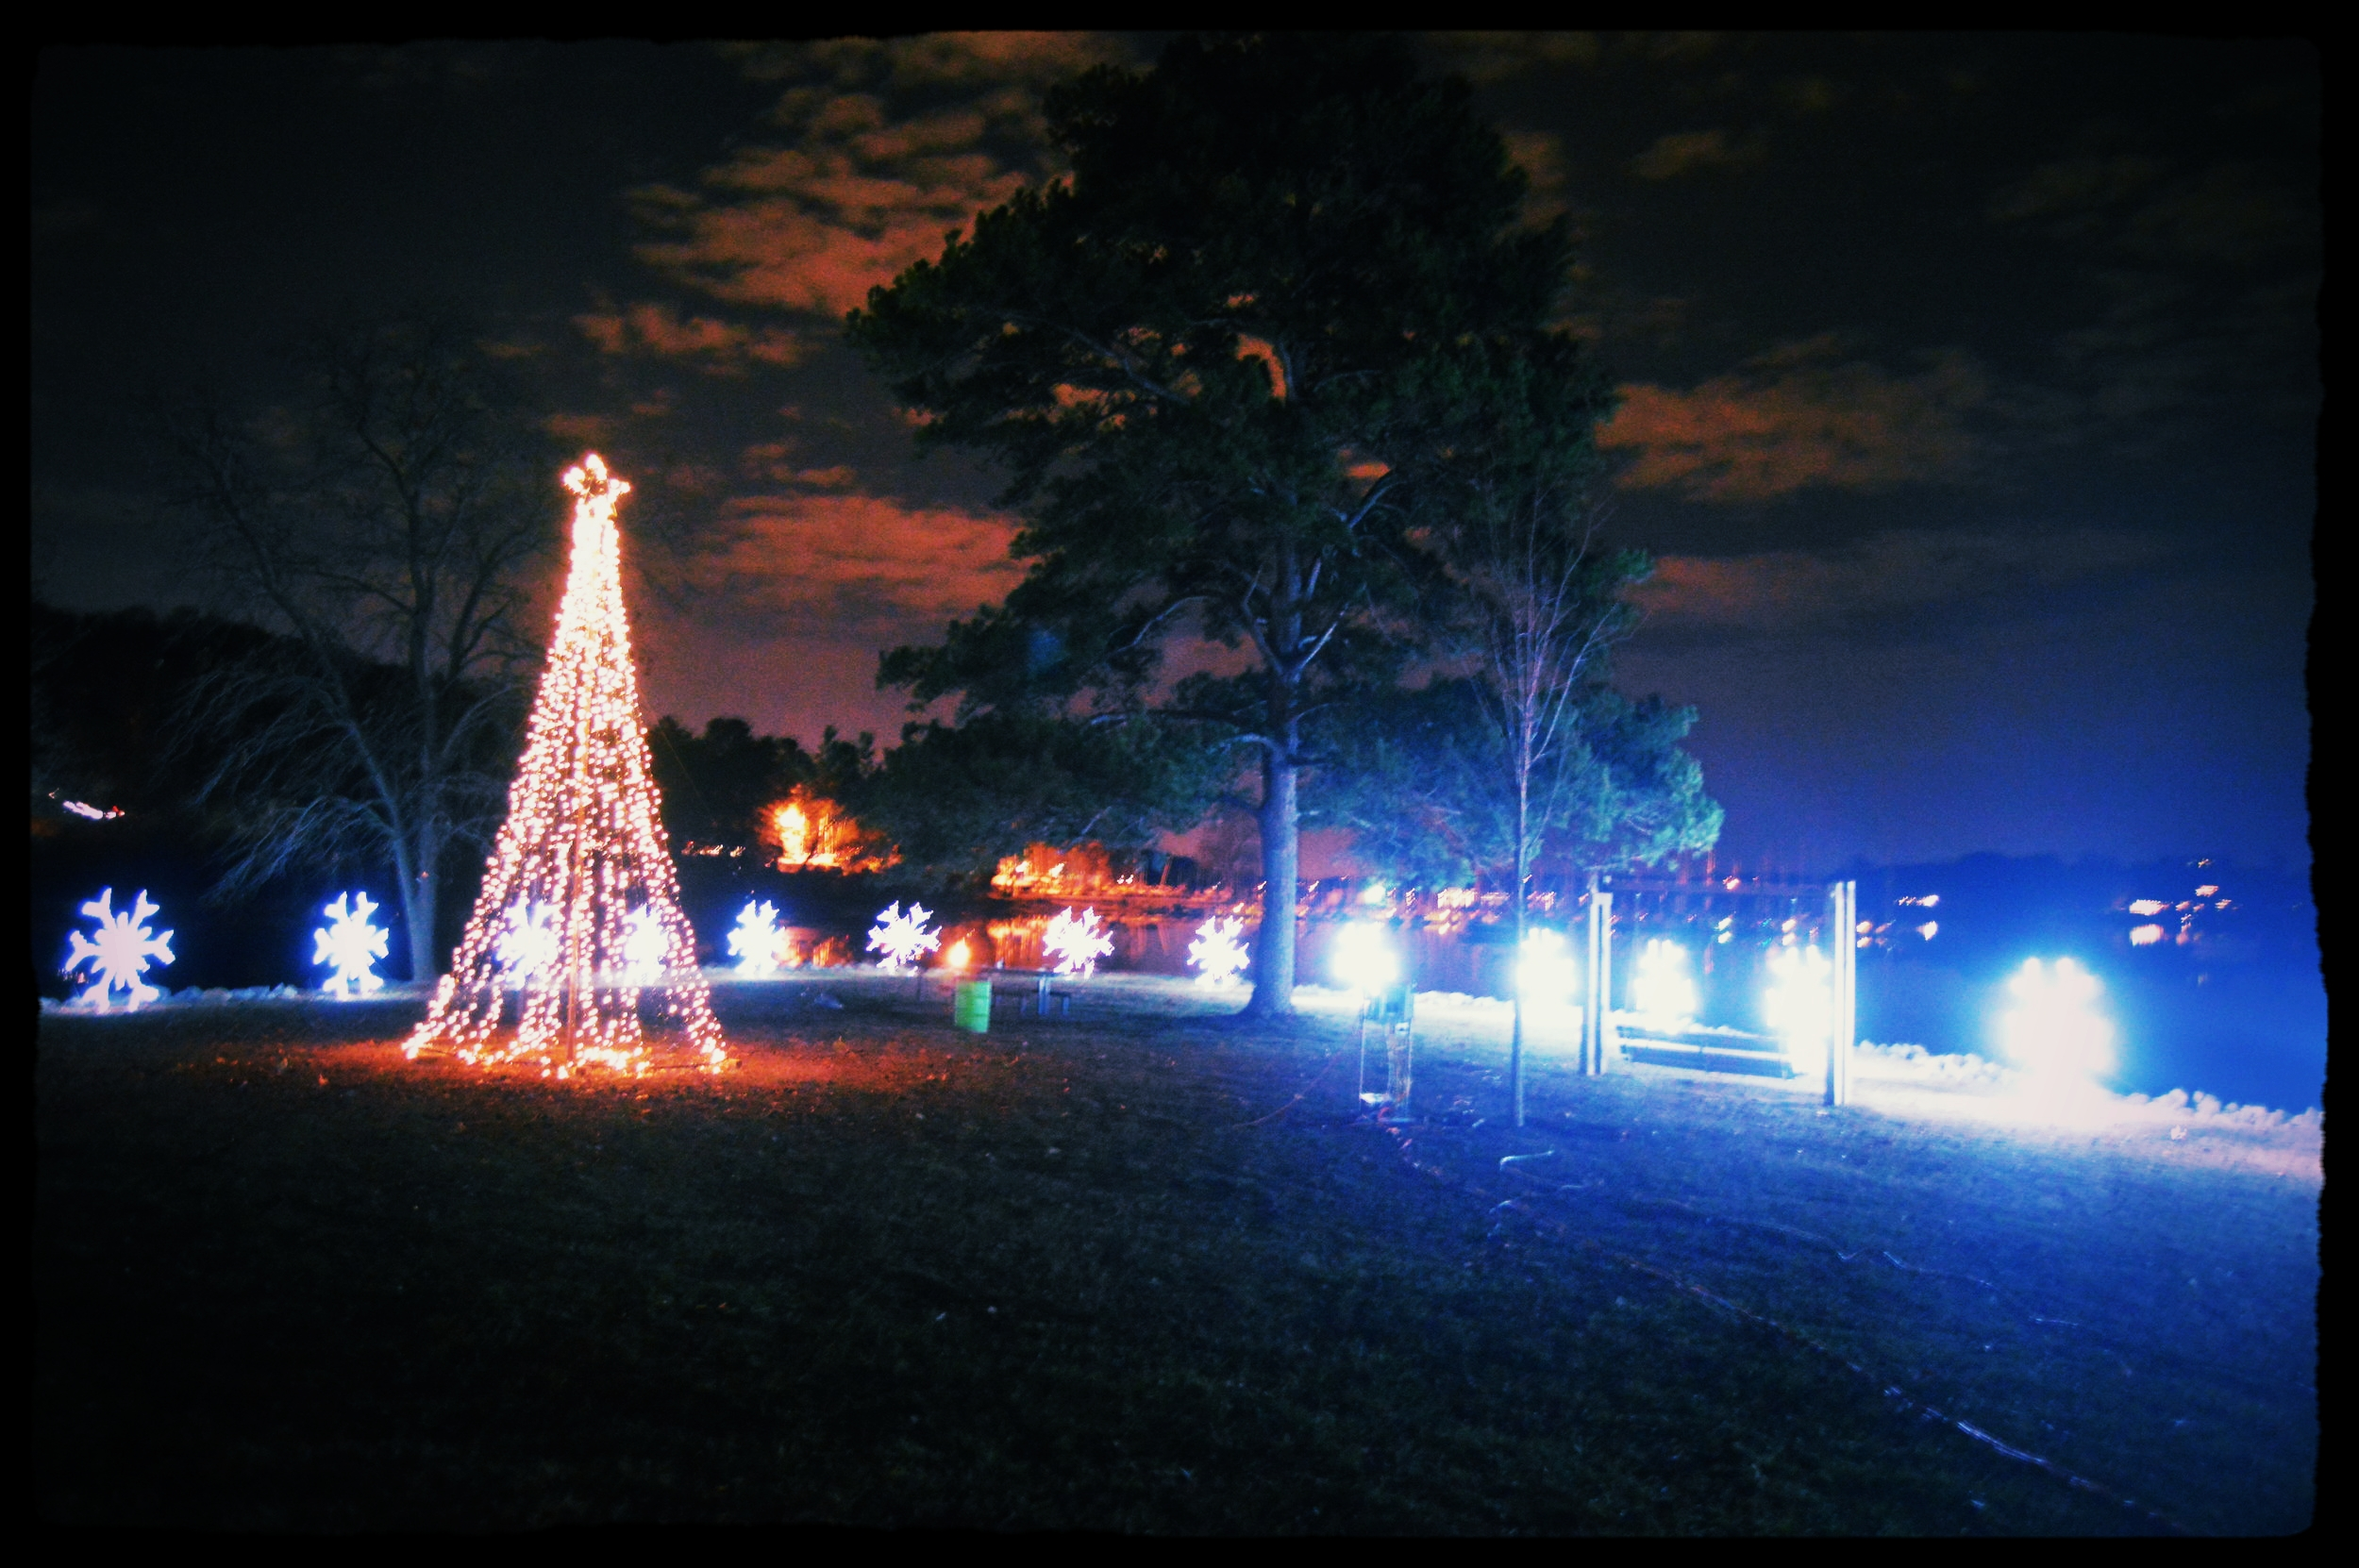 During the Christmas season, the lights at the Cove at Concord Park attract thousands of people to this part of Ft. Loudoun Lake's Northshore.